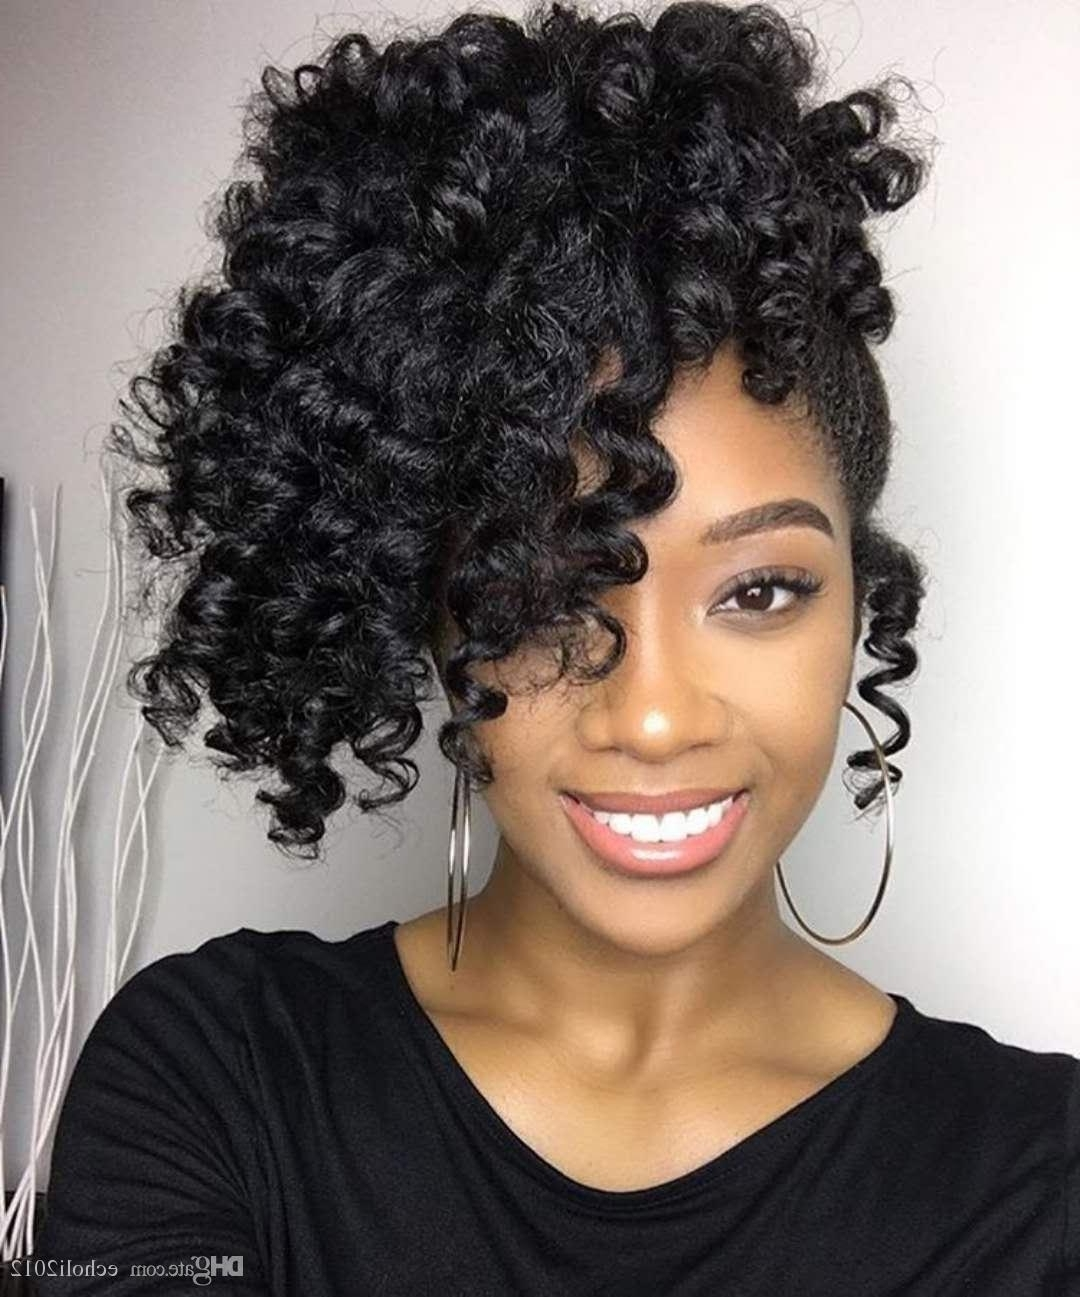 Short High Ponytail Human Hair Unprocessed Brazilian Virgin Hair With Popular High Curled Do Ponytail Hairstyles For Dark Hair (View 14 of 20)